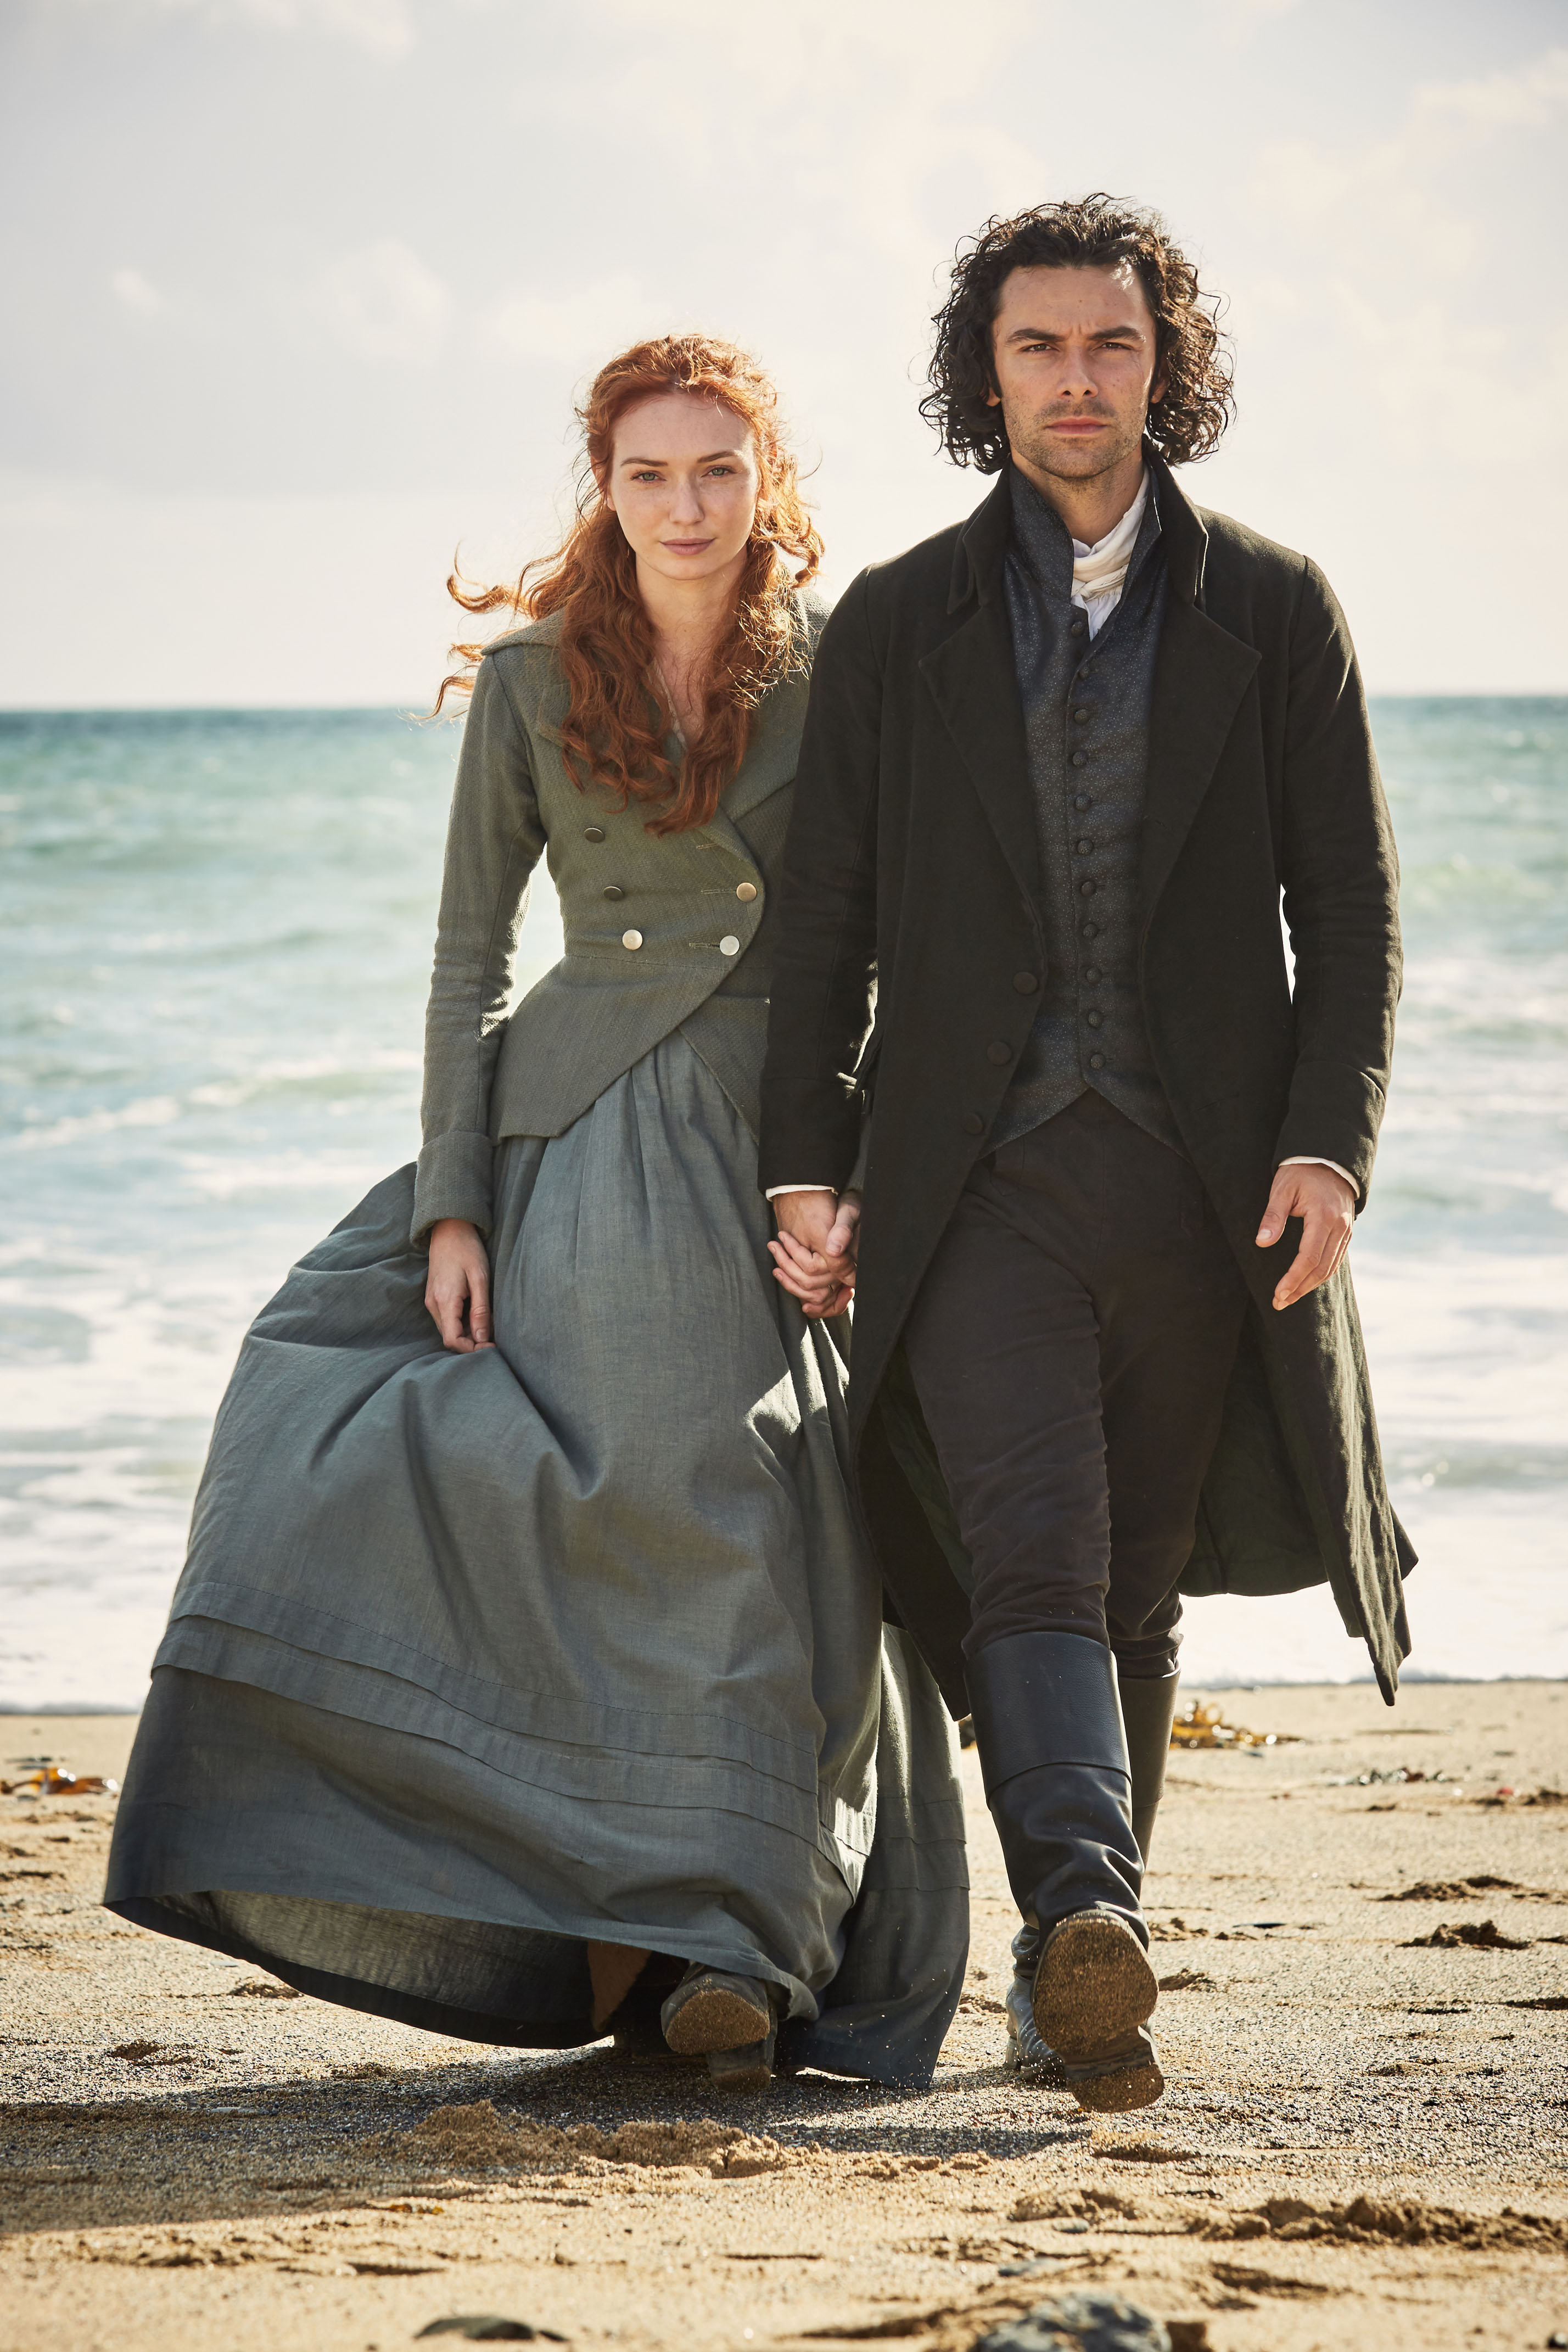 Damelza and ross Poldark series 3